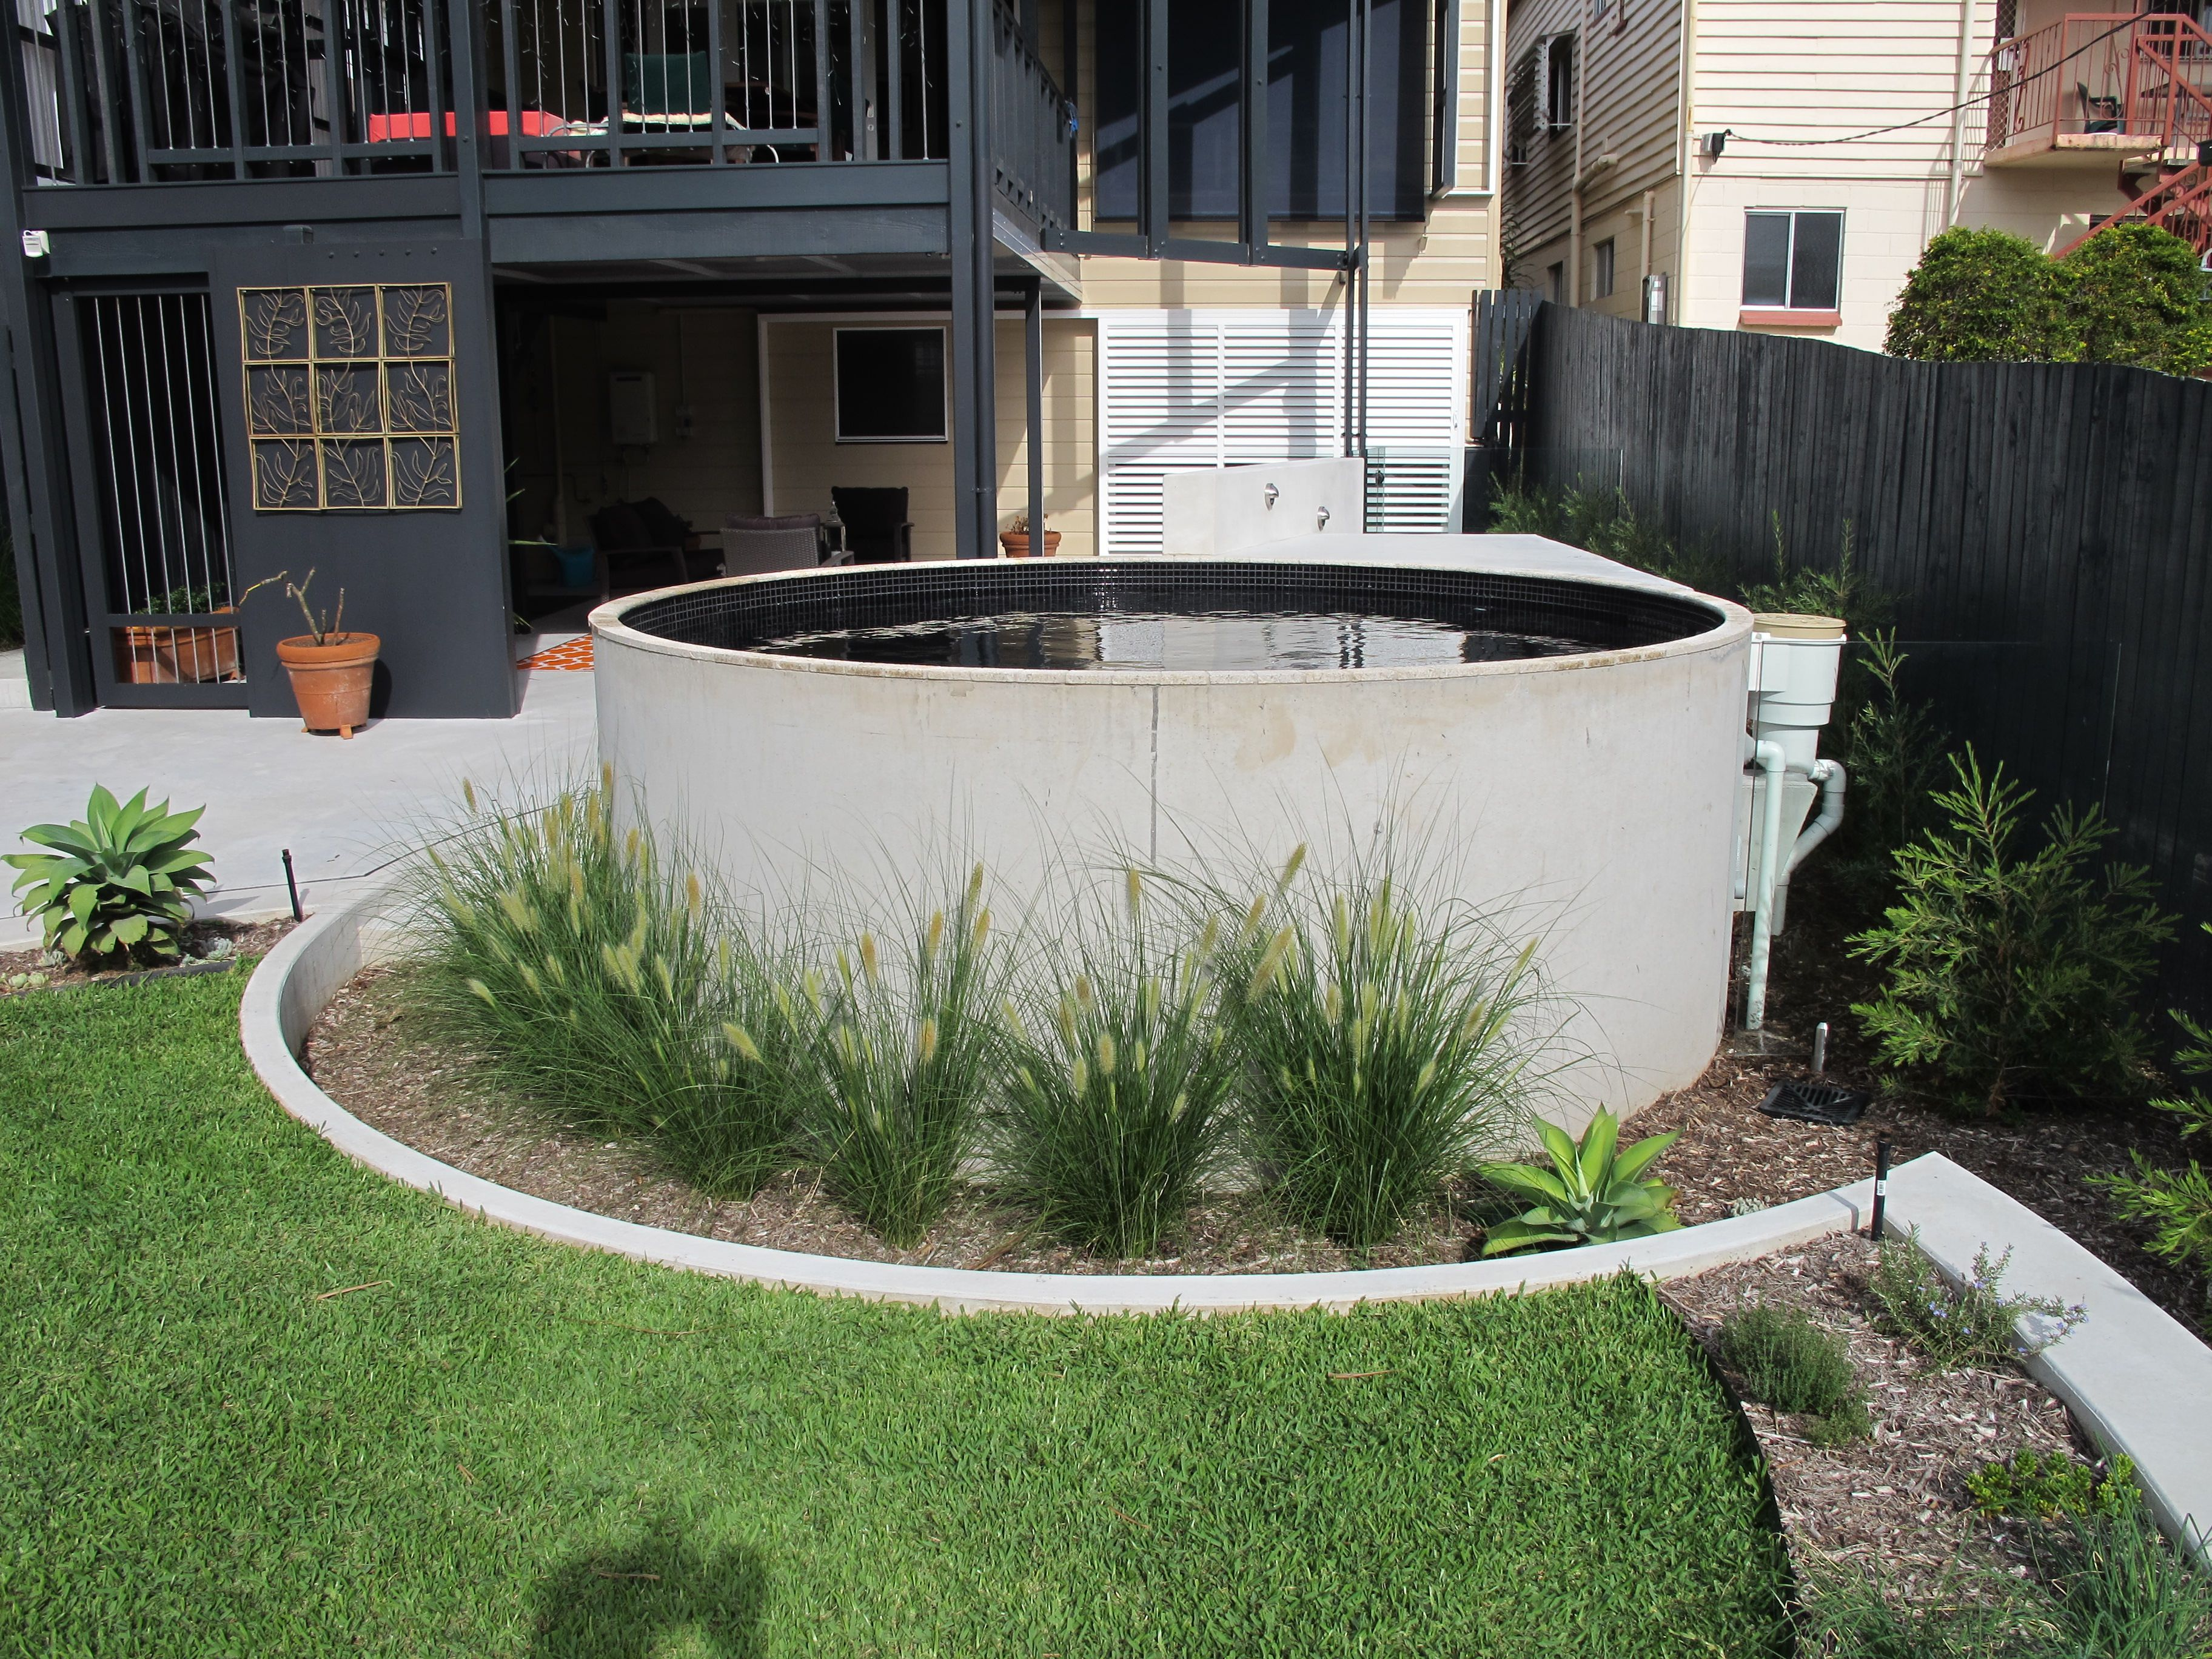 Image Result For Precast Circular Plunge Pool The Castle Pinterest Plunge Pool